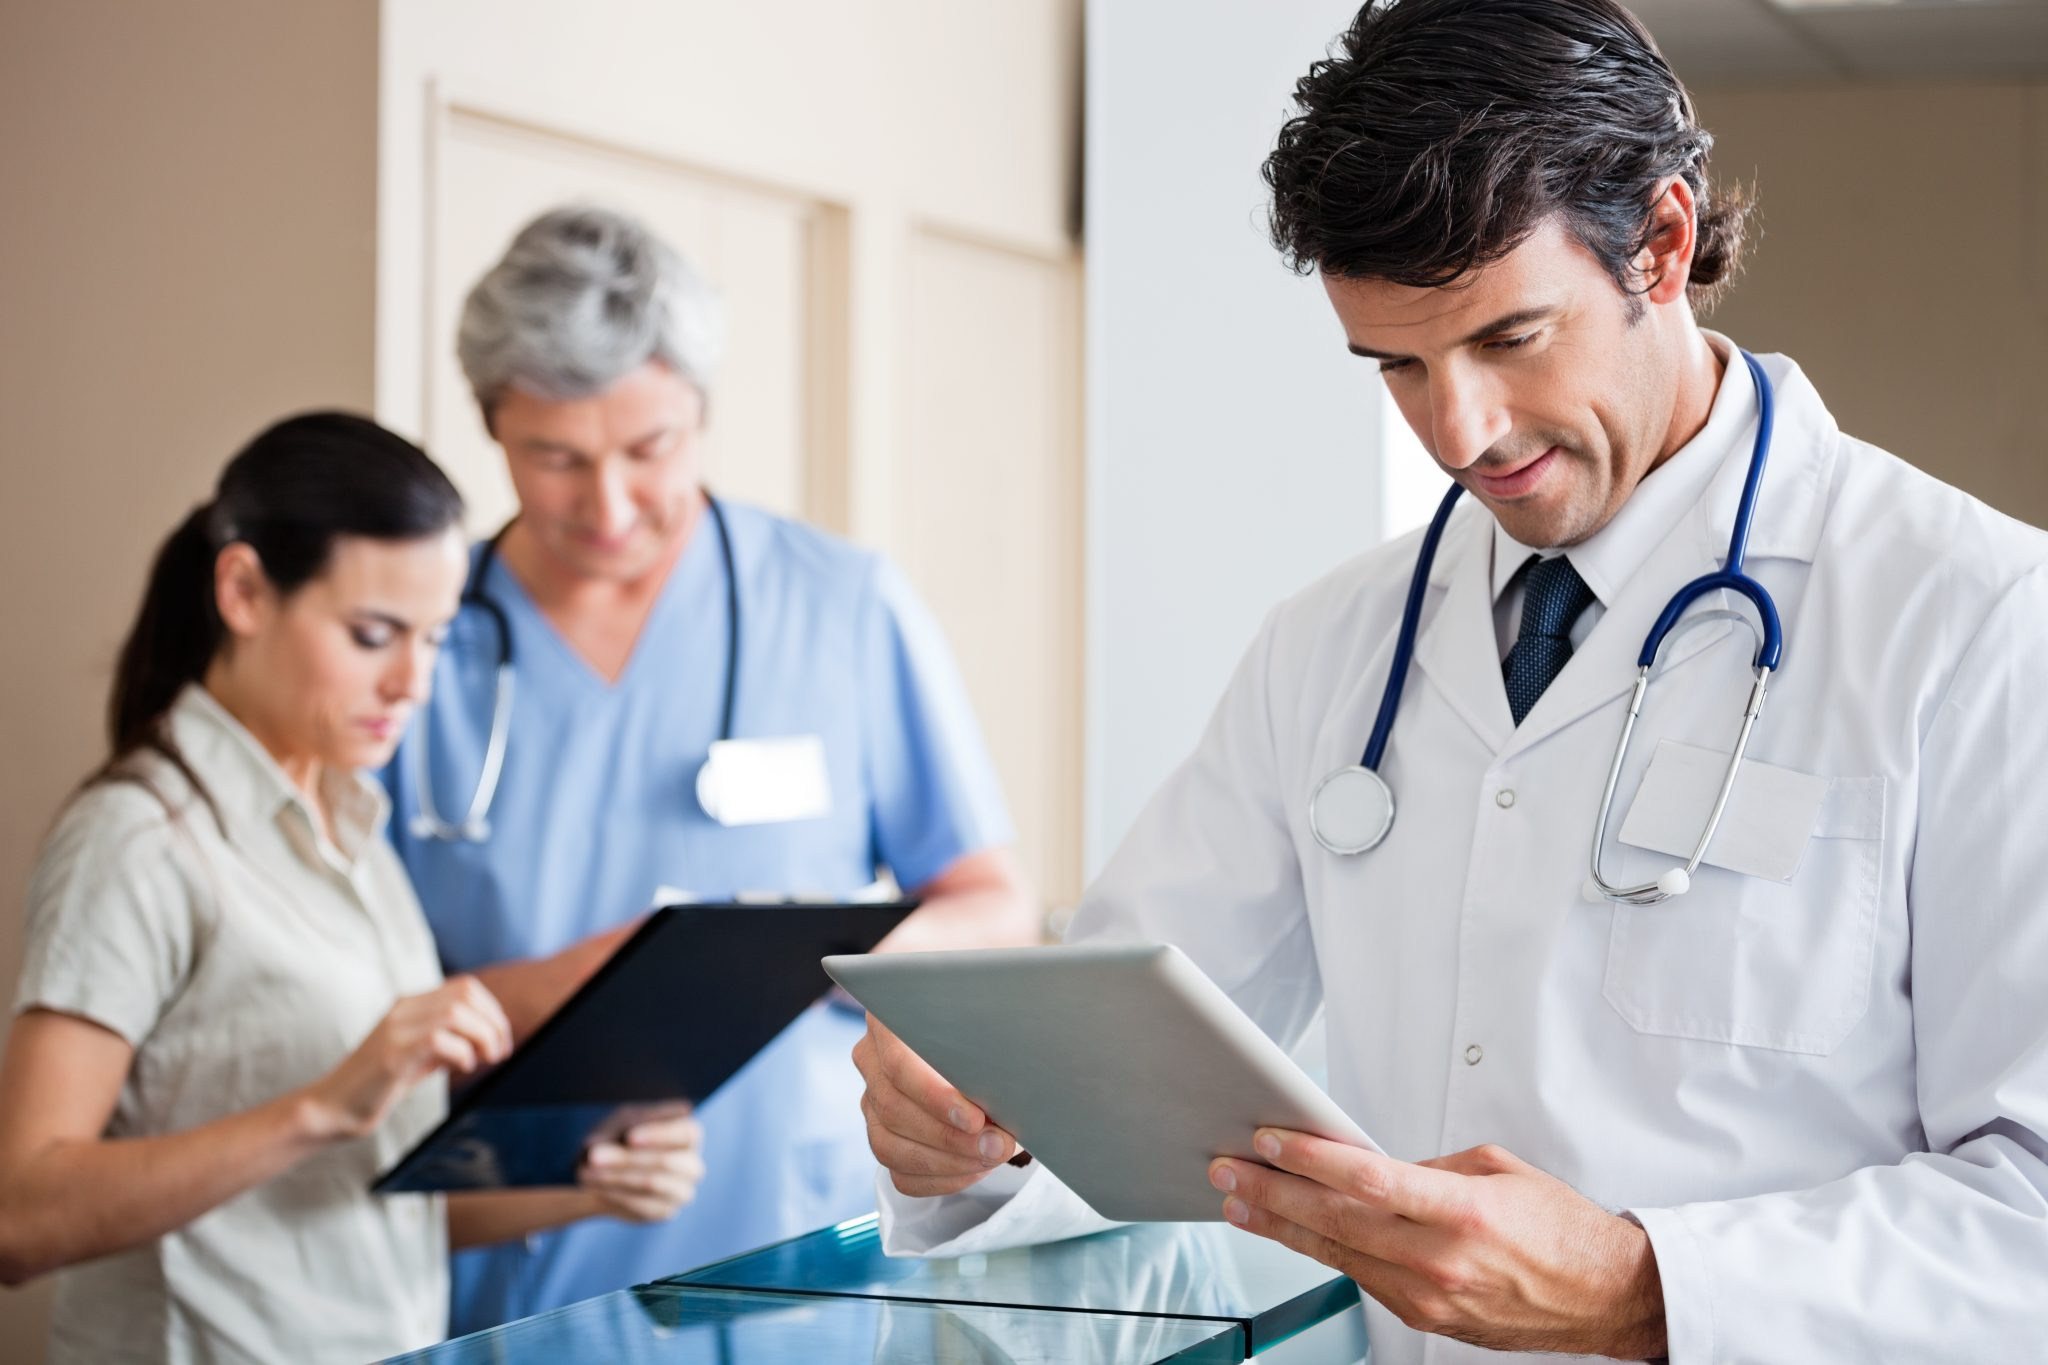 Digital Health − a Paradigm Shift for Healthcare Systems